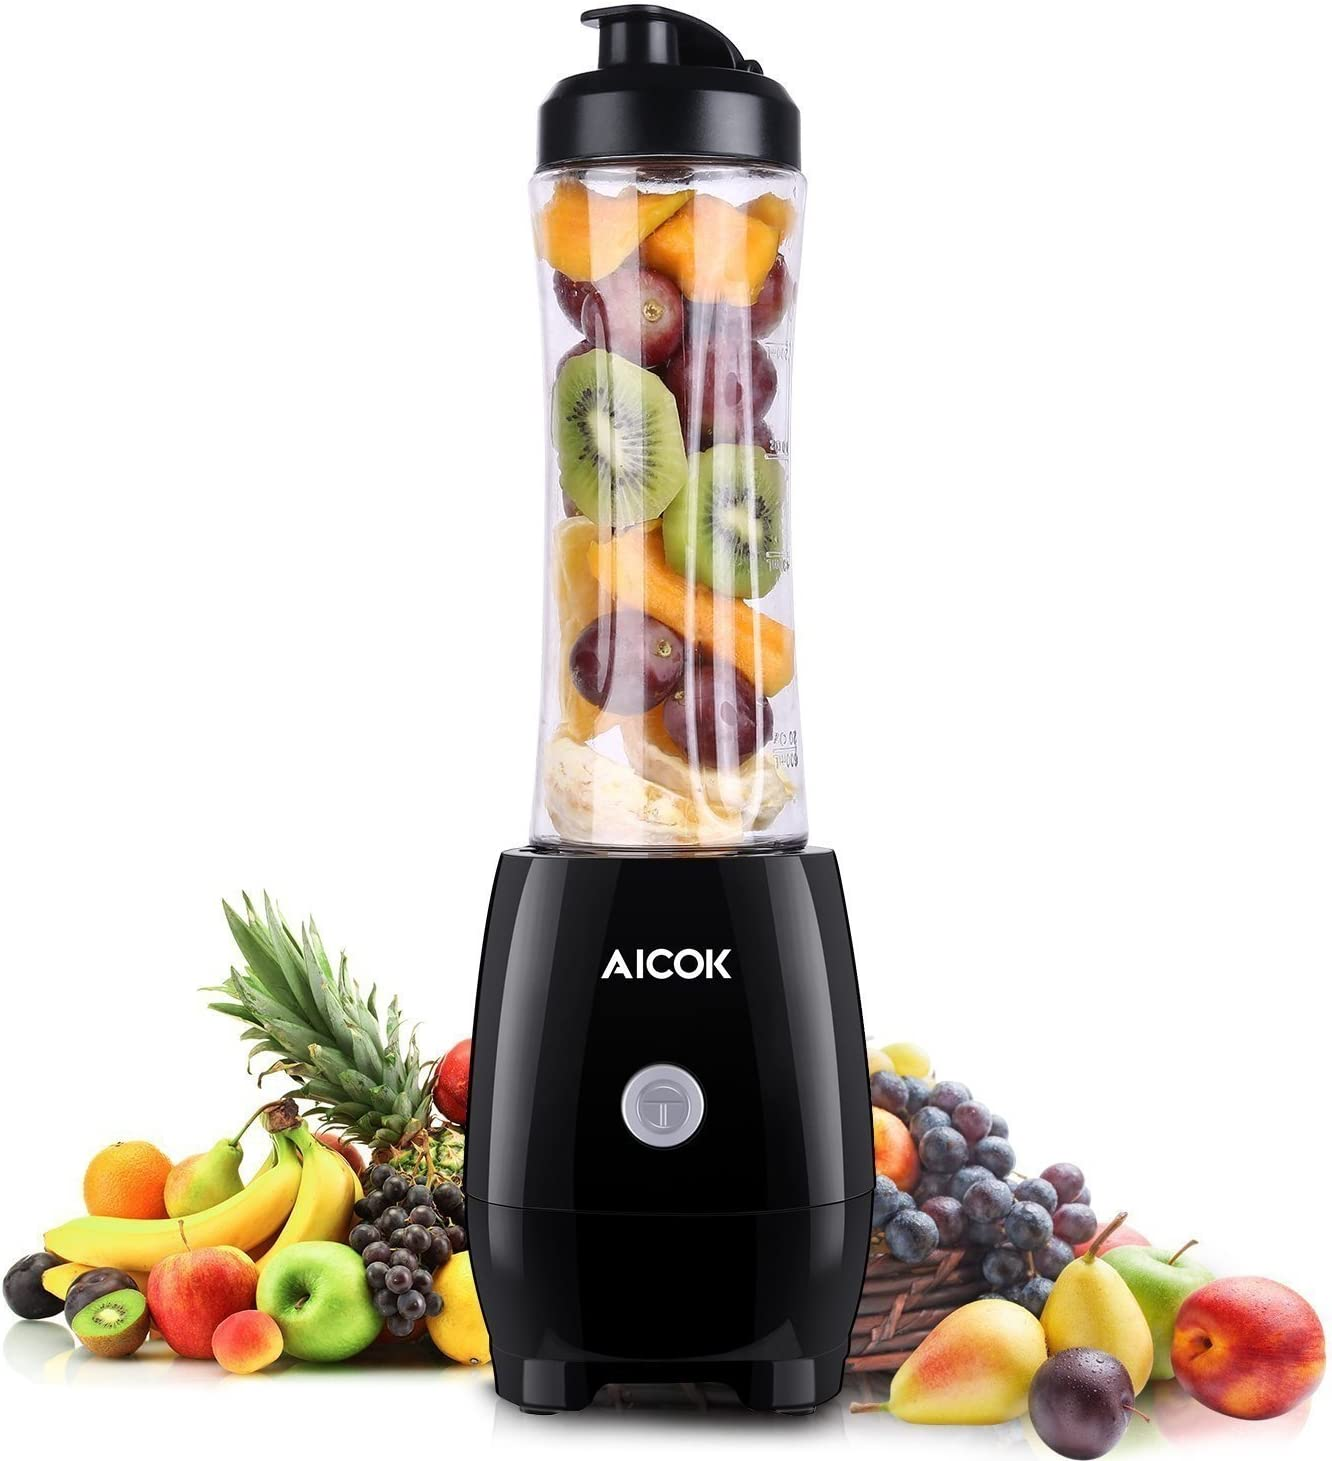 Aicok dsf Personal Blender 300W, Single Serve Blender with Sport Tritan Cup, Mini Blender, Bullet Blender for Shakes and Smoothies, Smoothie Blender for Travel, Individual/Student, Black